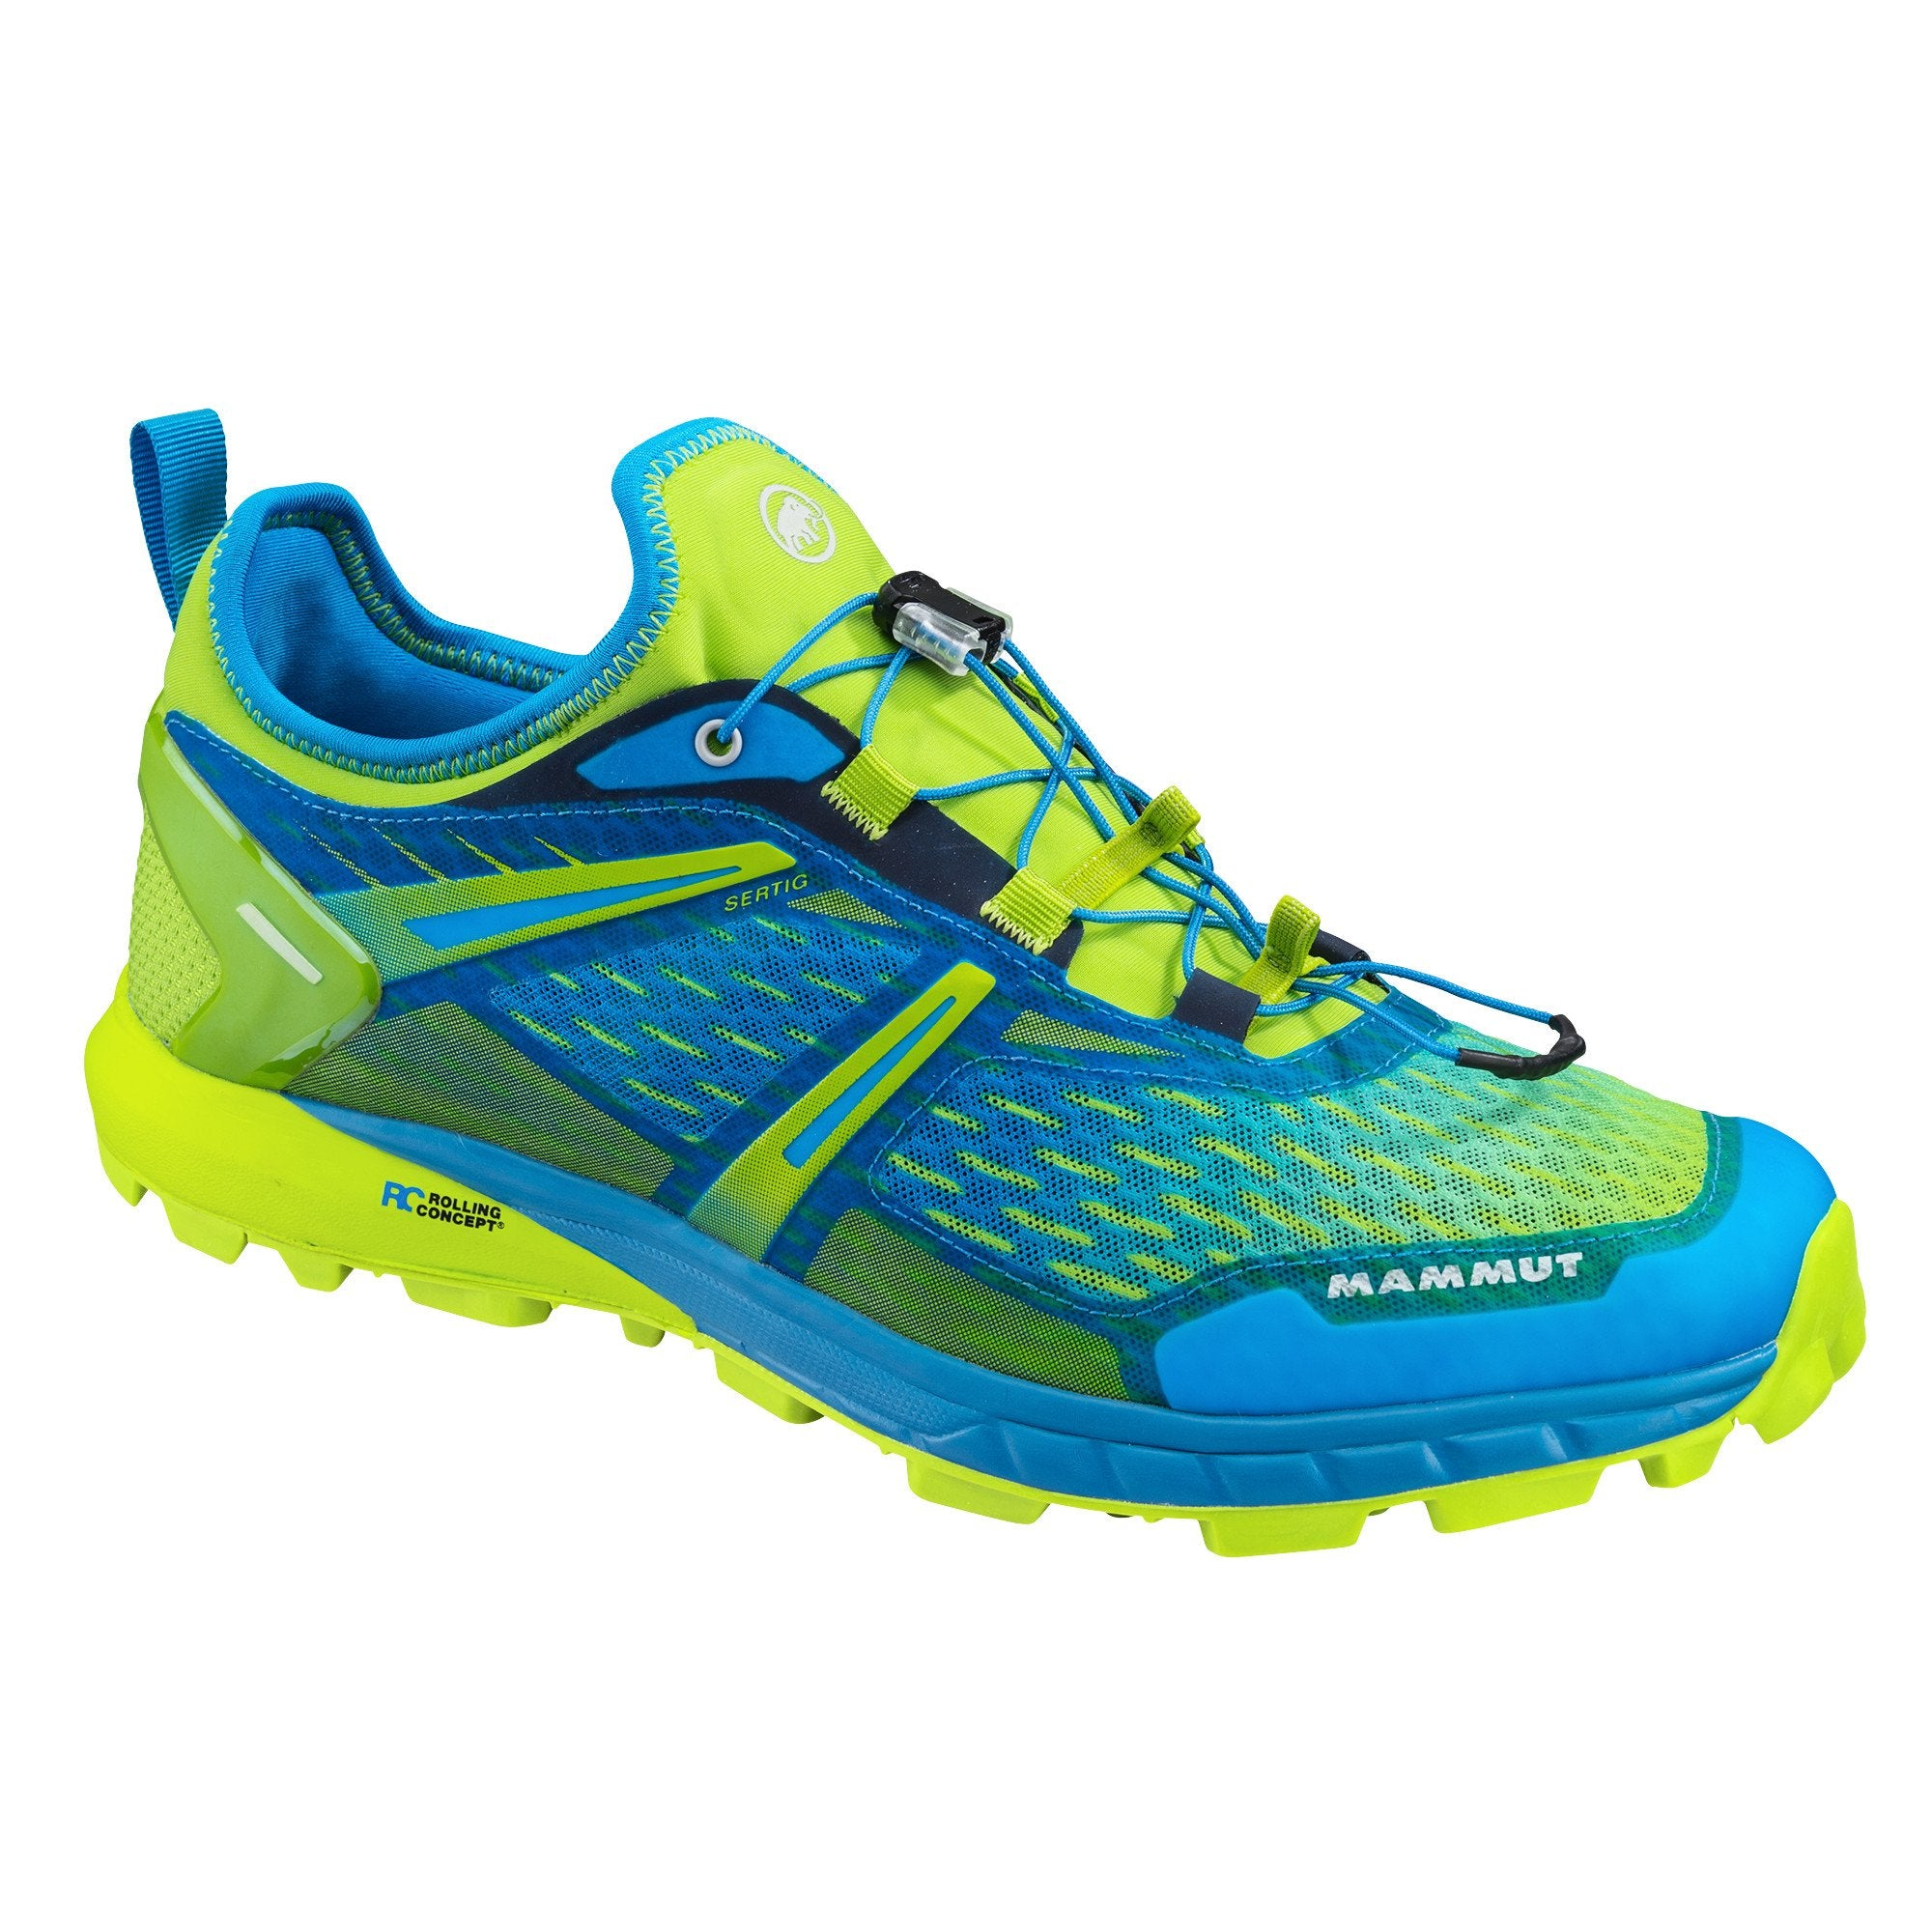 Mammut Sertig Low running shoe, outer side view in blue and lime green colours